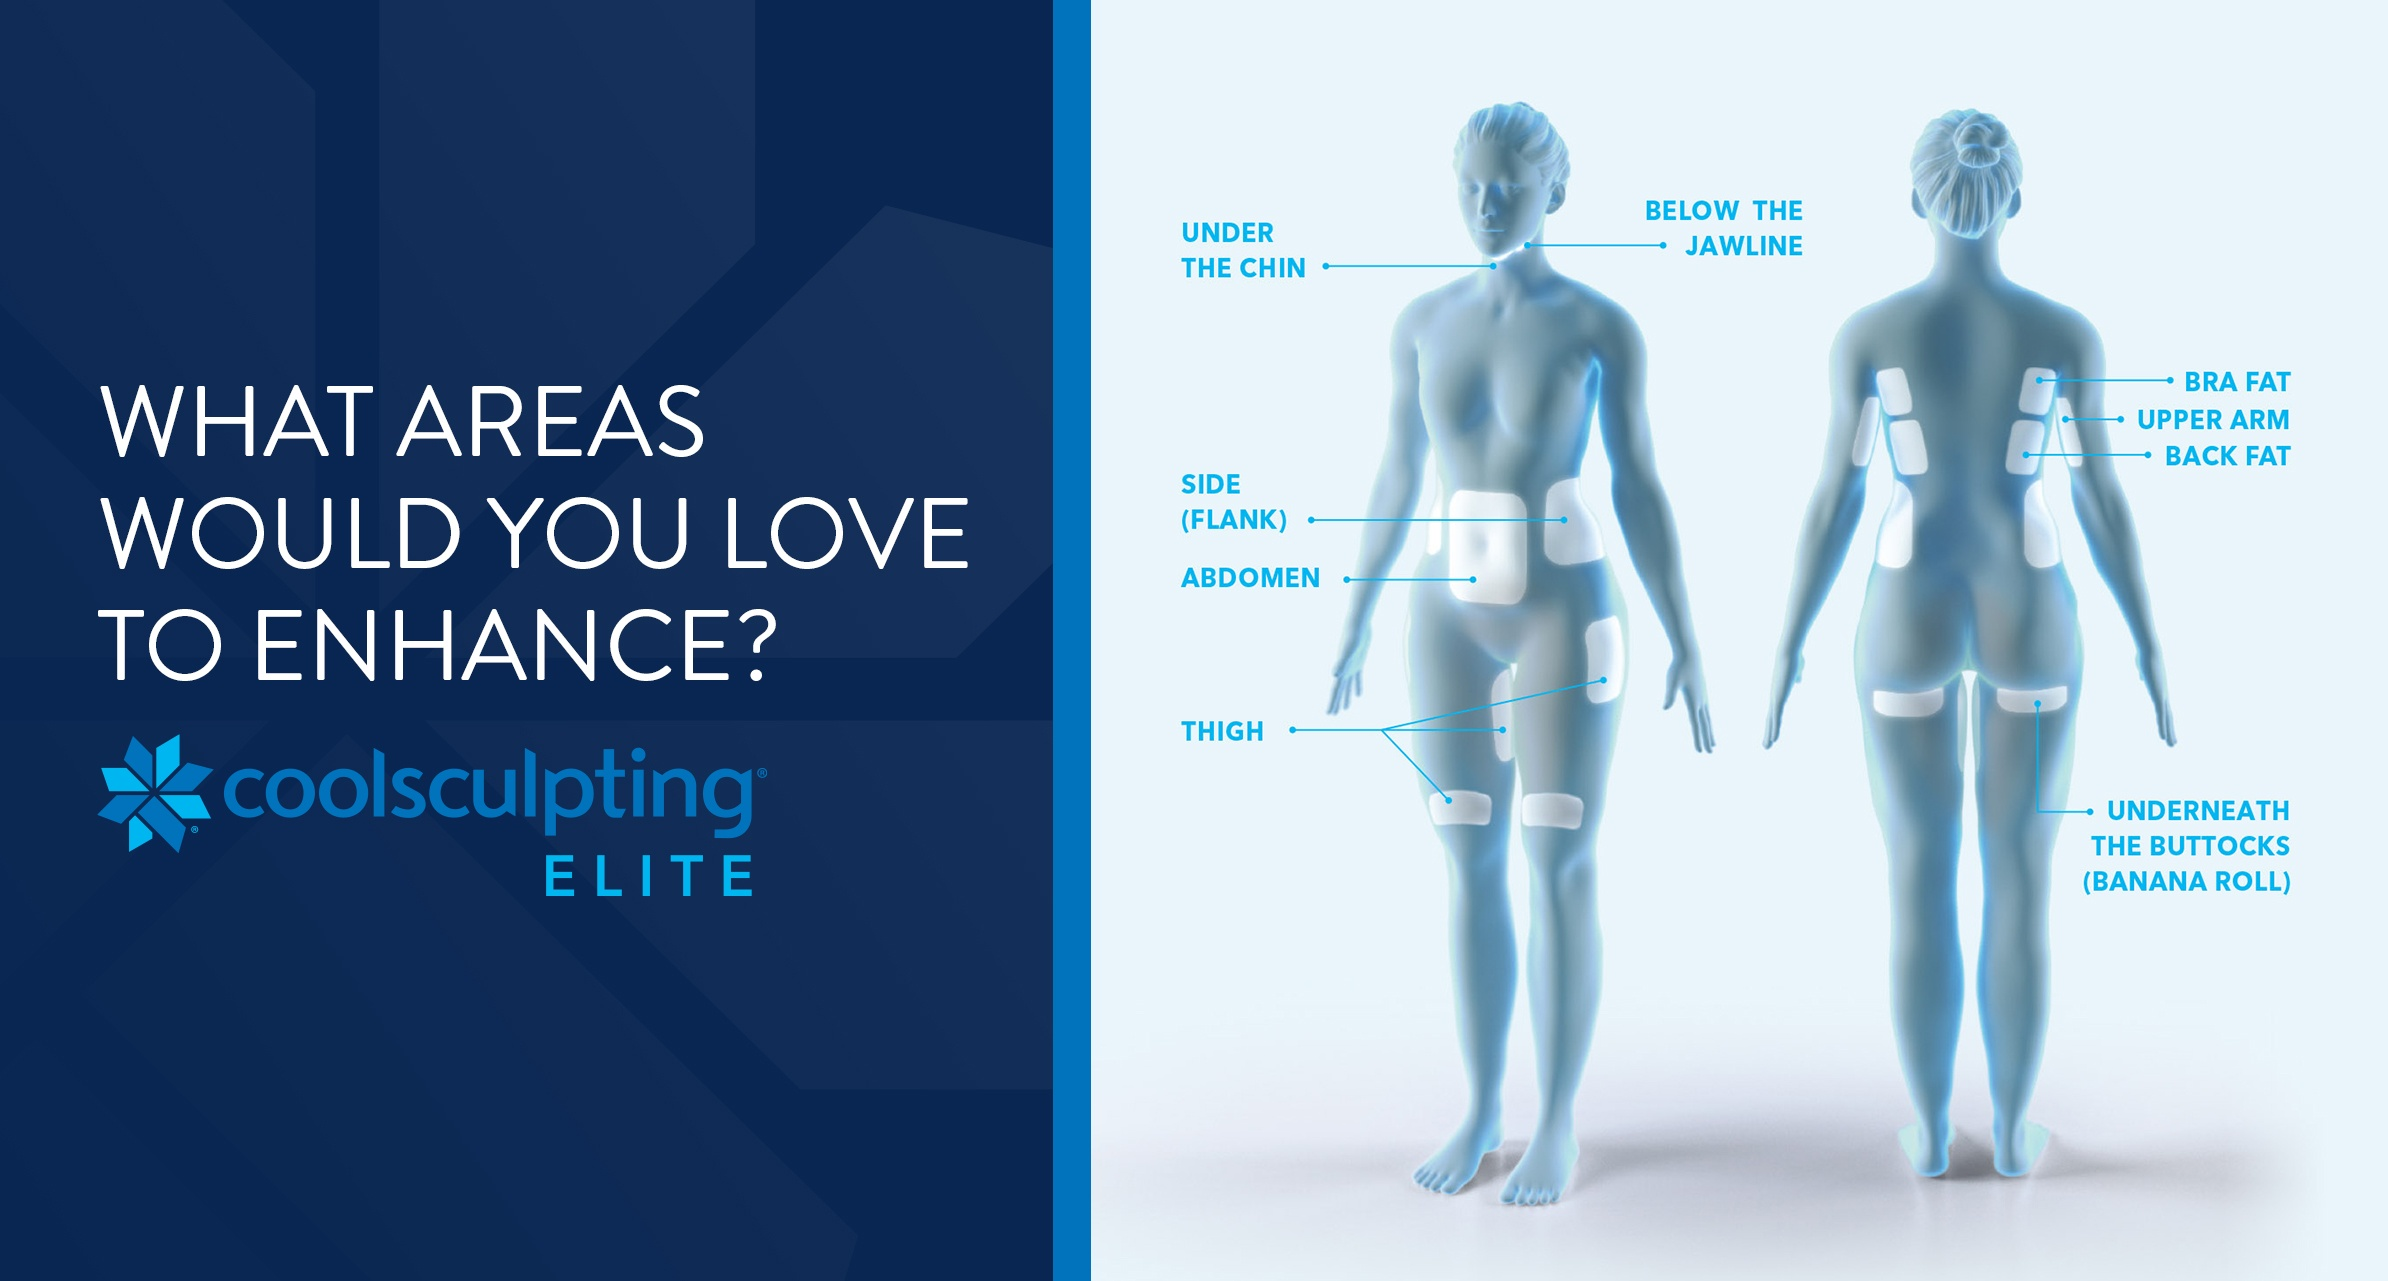 CoolSculpting - Areas To Enhance